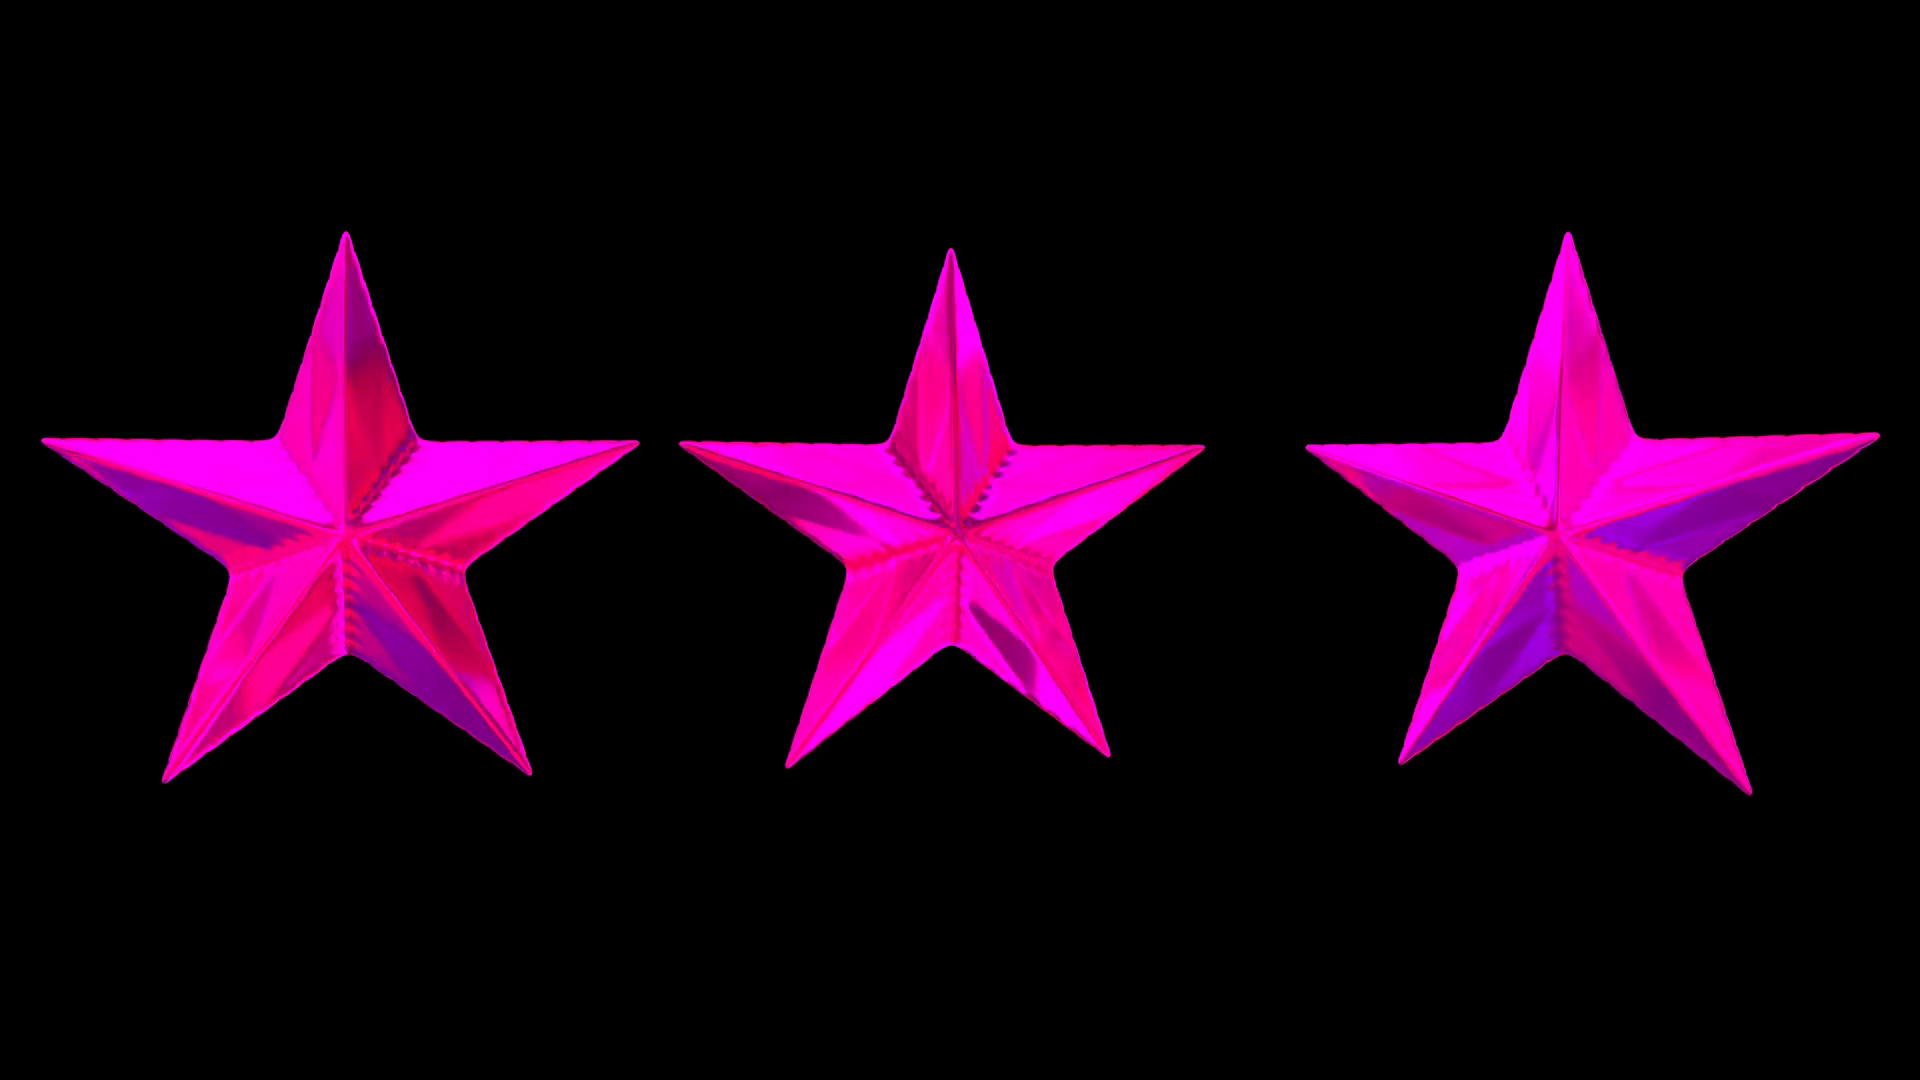 Animated spinning three shinning pink or magenta stars against transparent  background. Alpha channel embedded with PNG file. Loop able and isolated. - Pink Star PNG HD